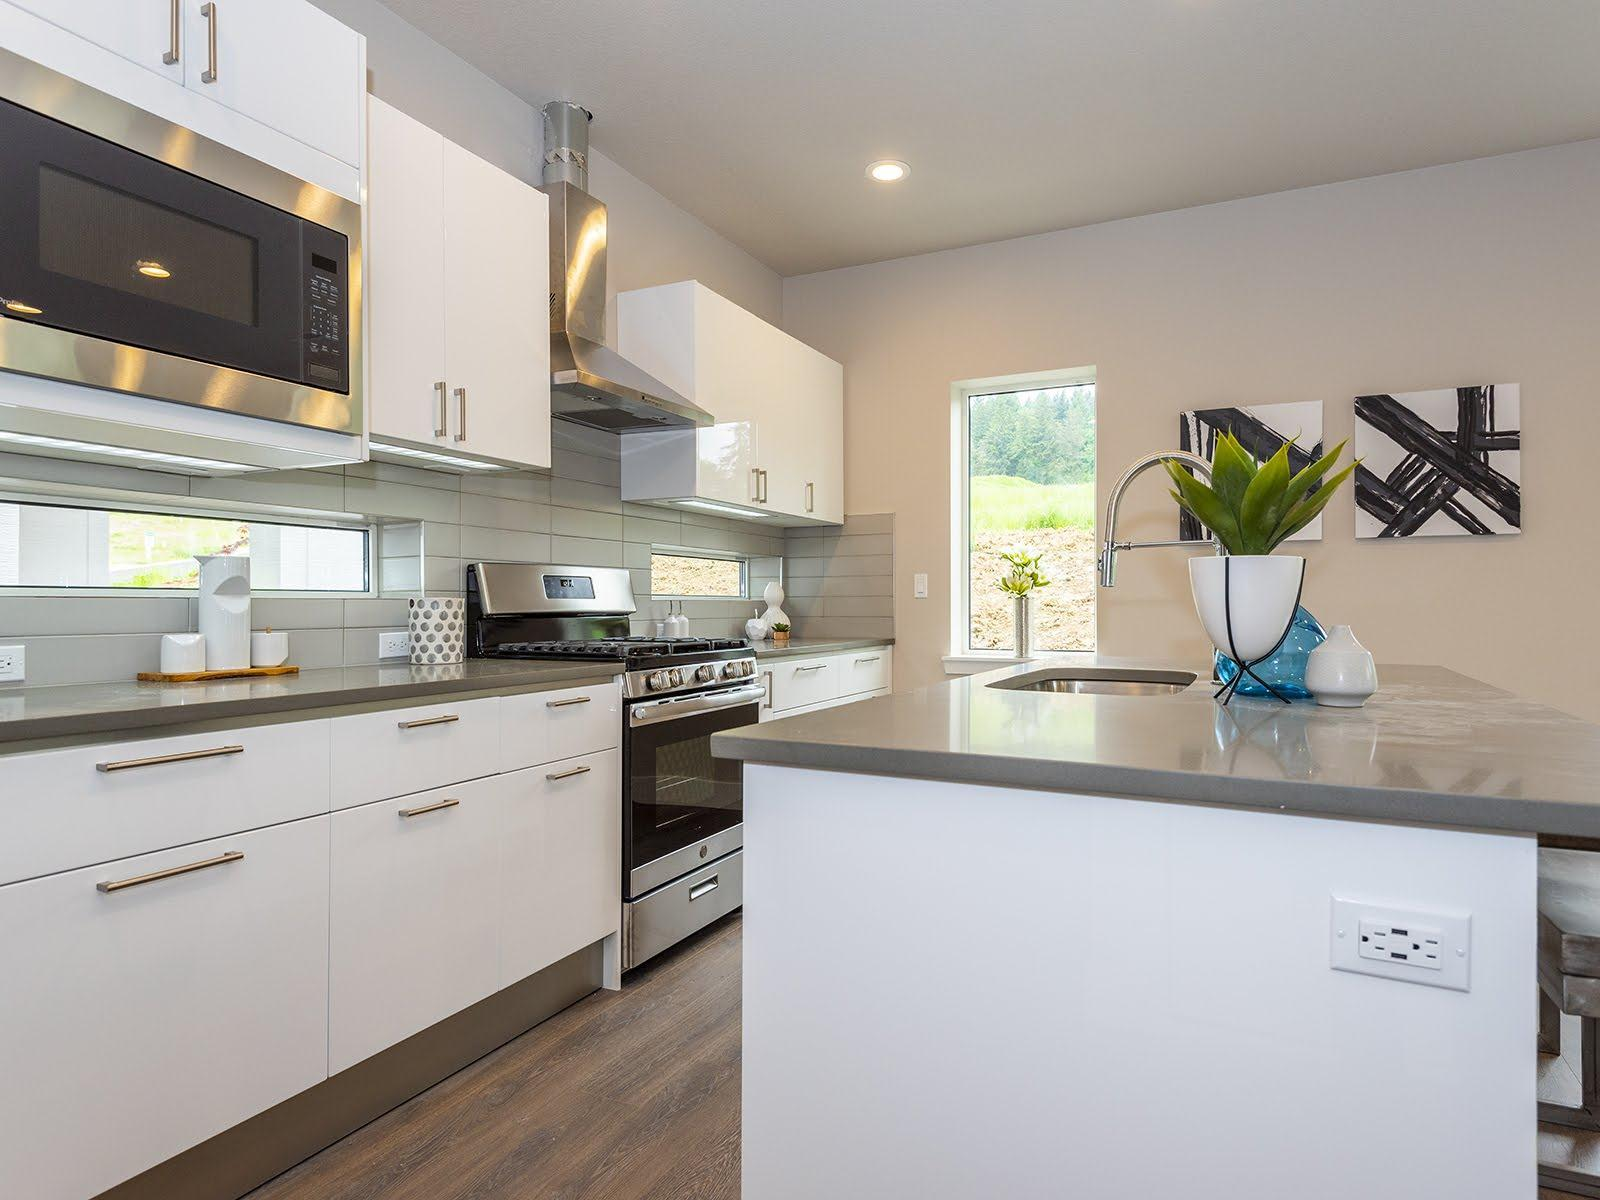 Kitchen featured in the Sakura By Ichijo USA in Portland-Vancouver, OR